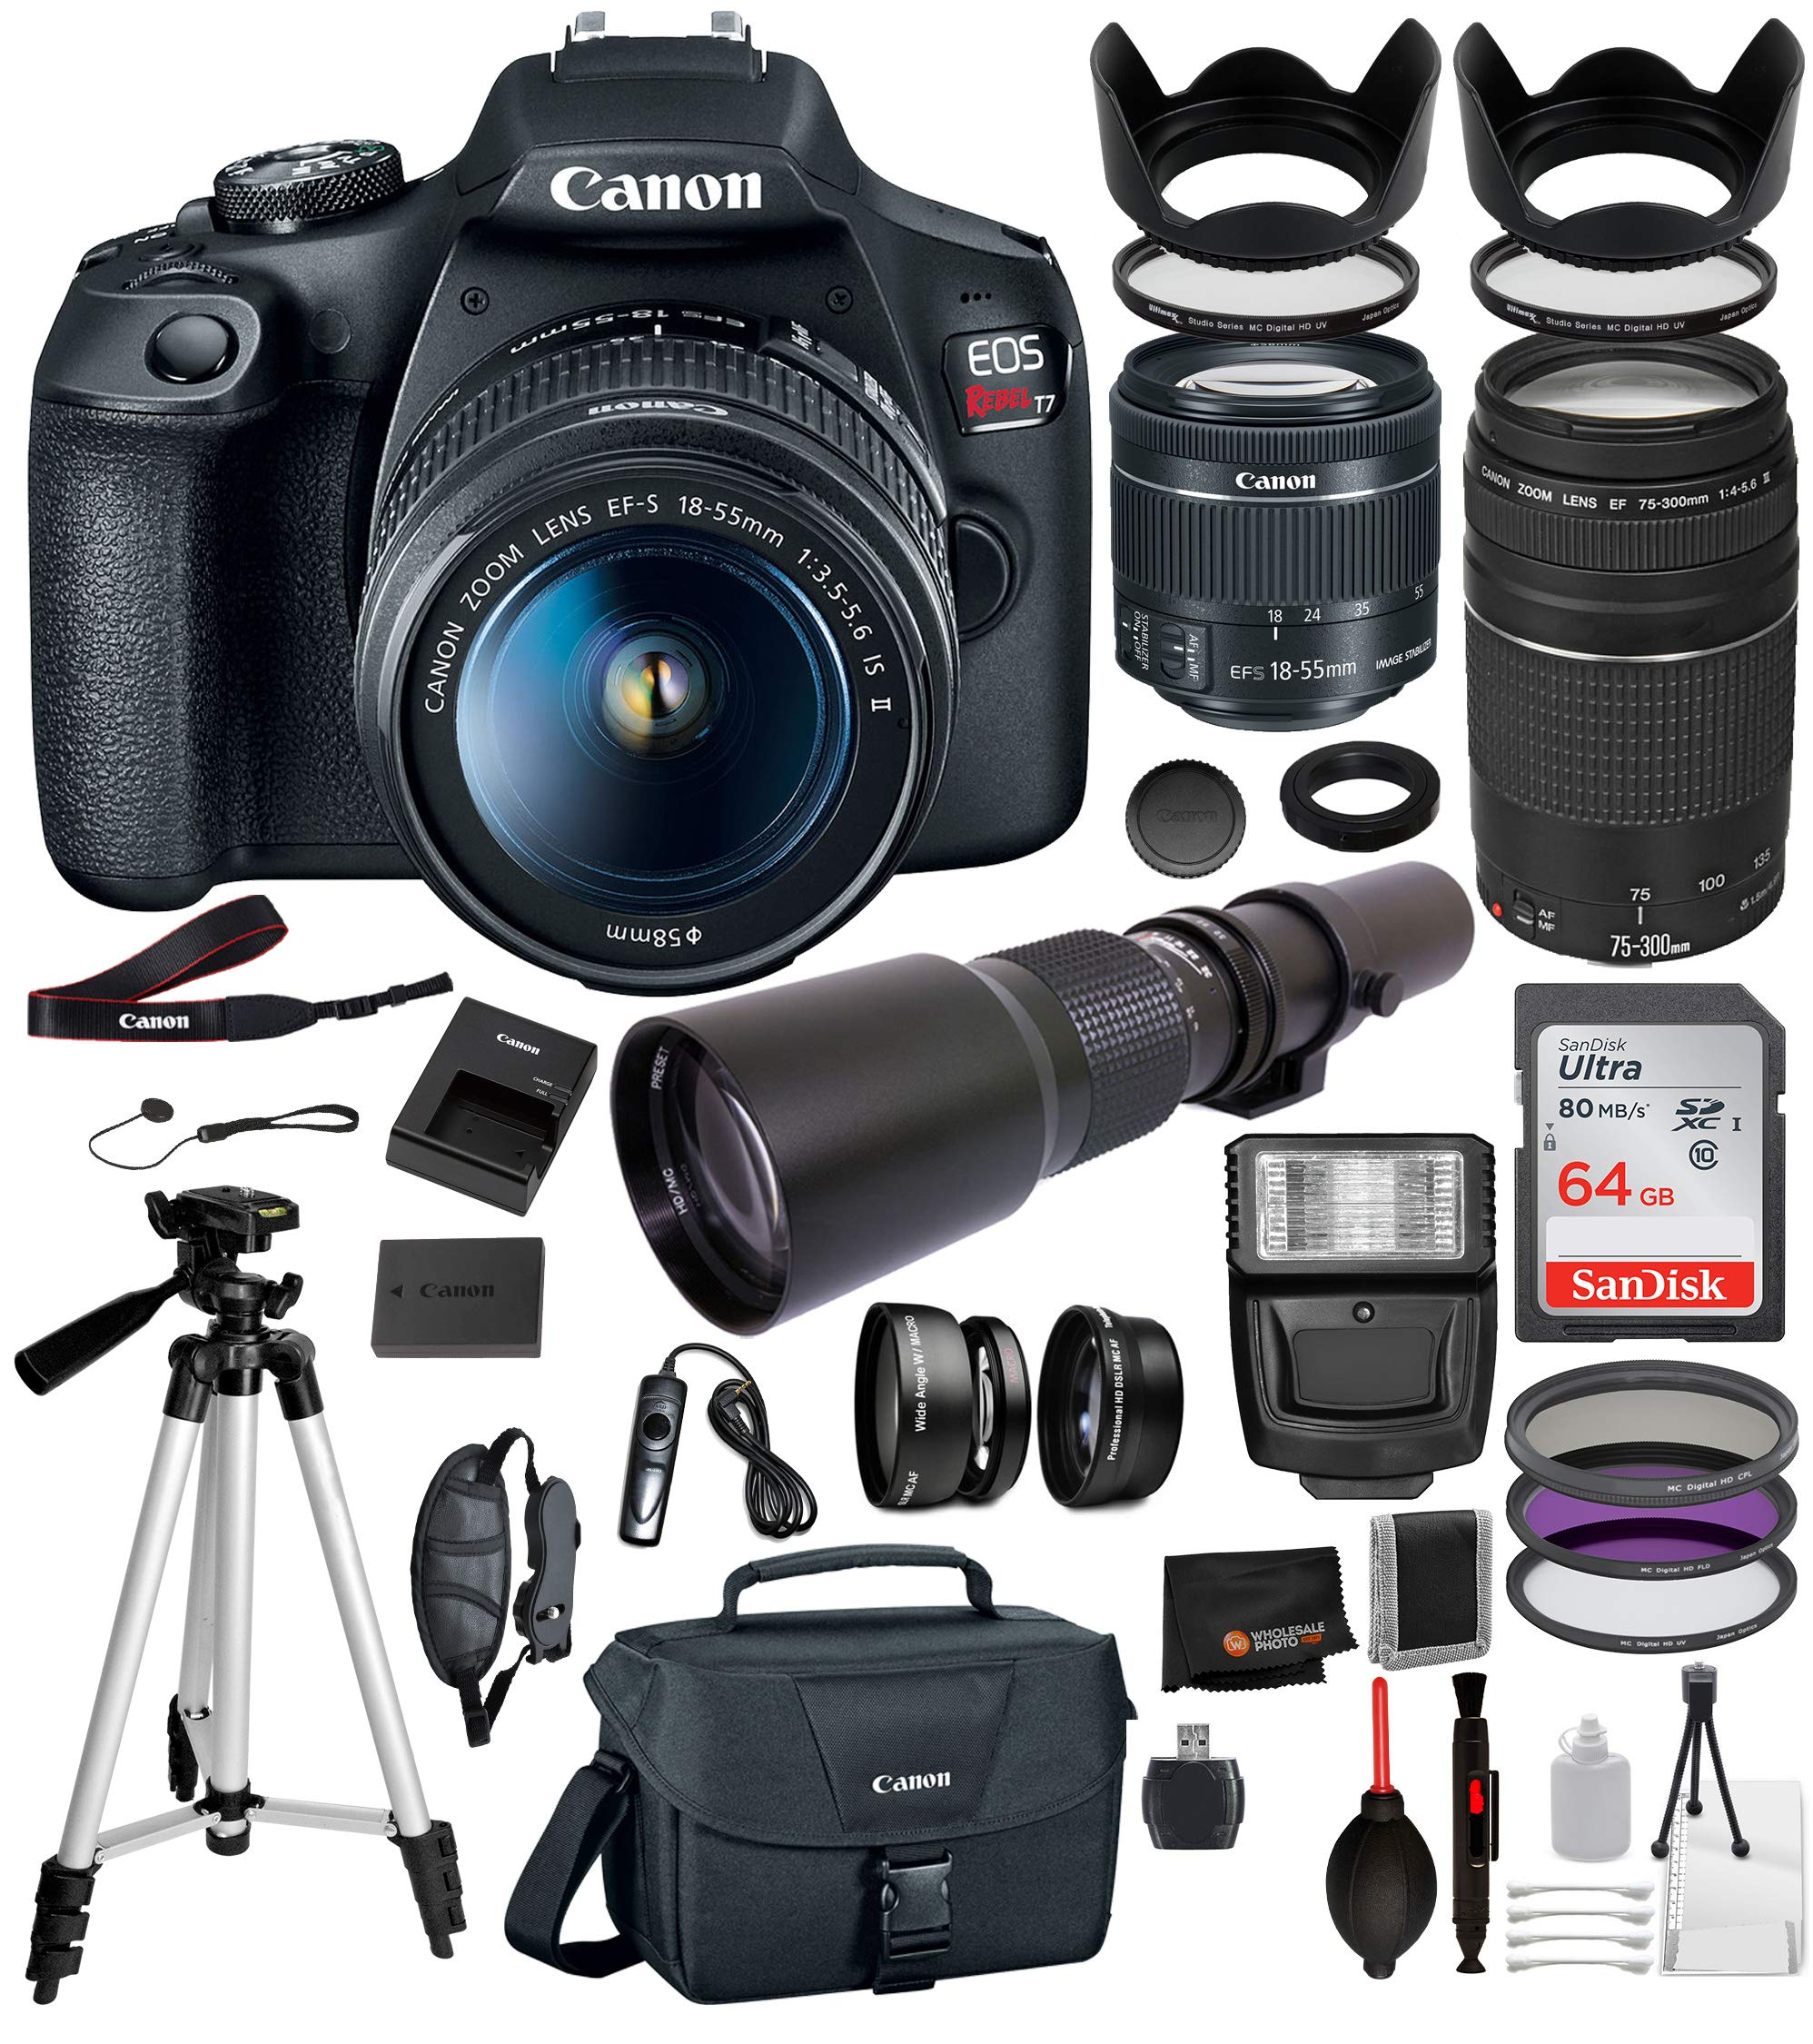 Canon EOS Rebel T7 Digital SLR Camera with EF-S 18-55mm is ii(2727C00 USA), Canon EF 75-300mm Telephoto Lens (Black) 22PC Professional Bundle - 500mm PRESET Lens - SanDisk 64gb SD Card + More